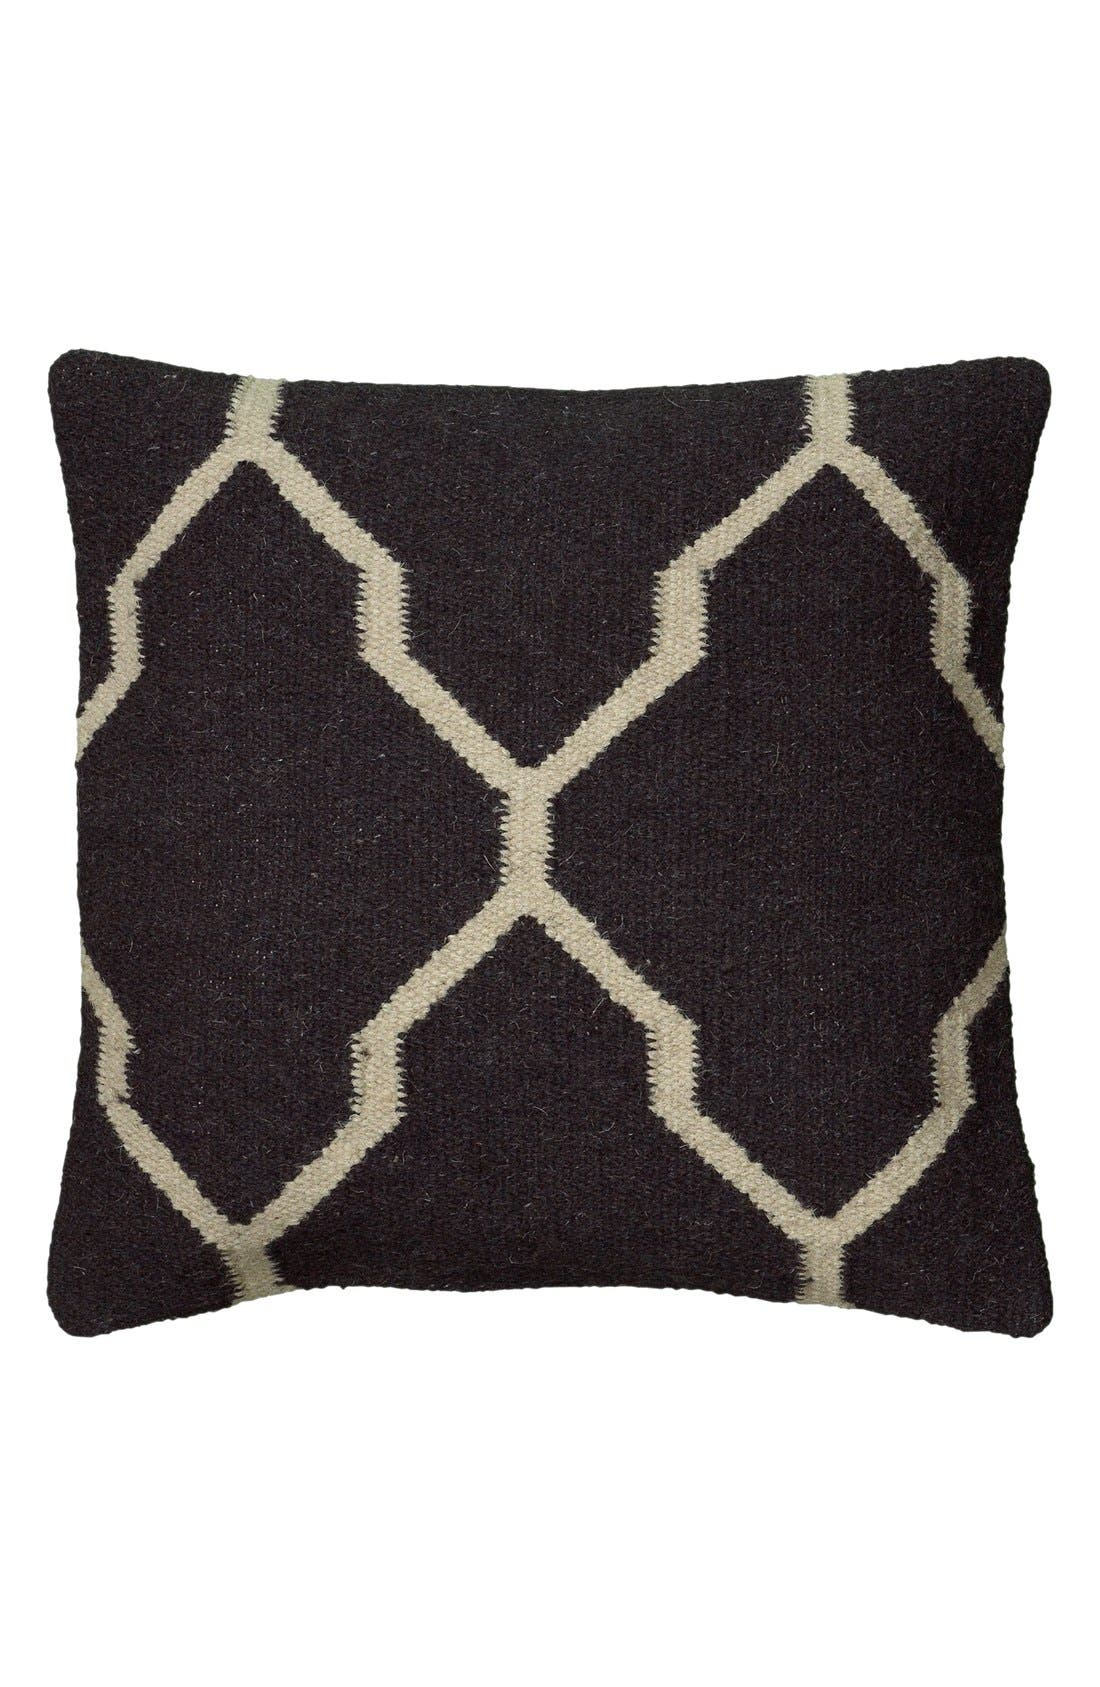 Rizzy Home 'Moroccan' Pillow